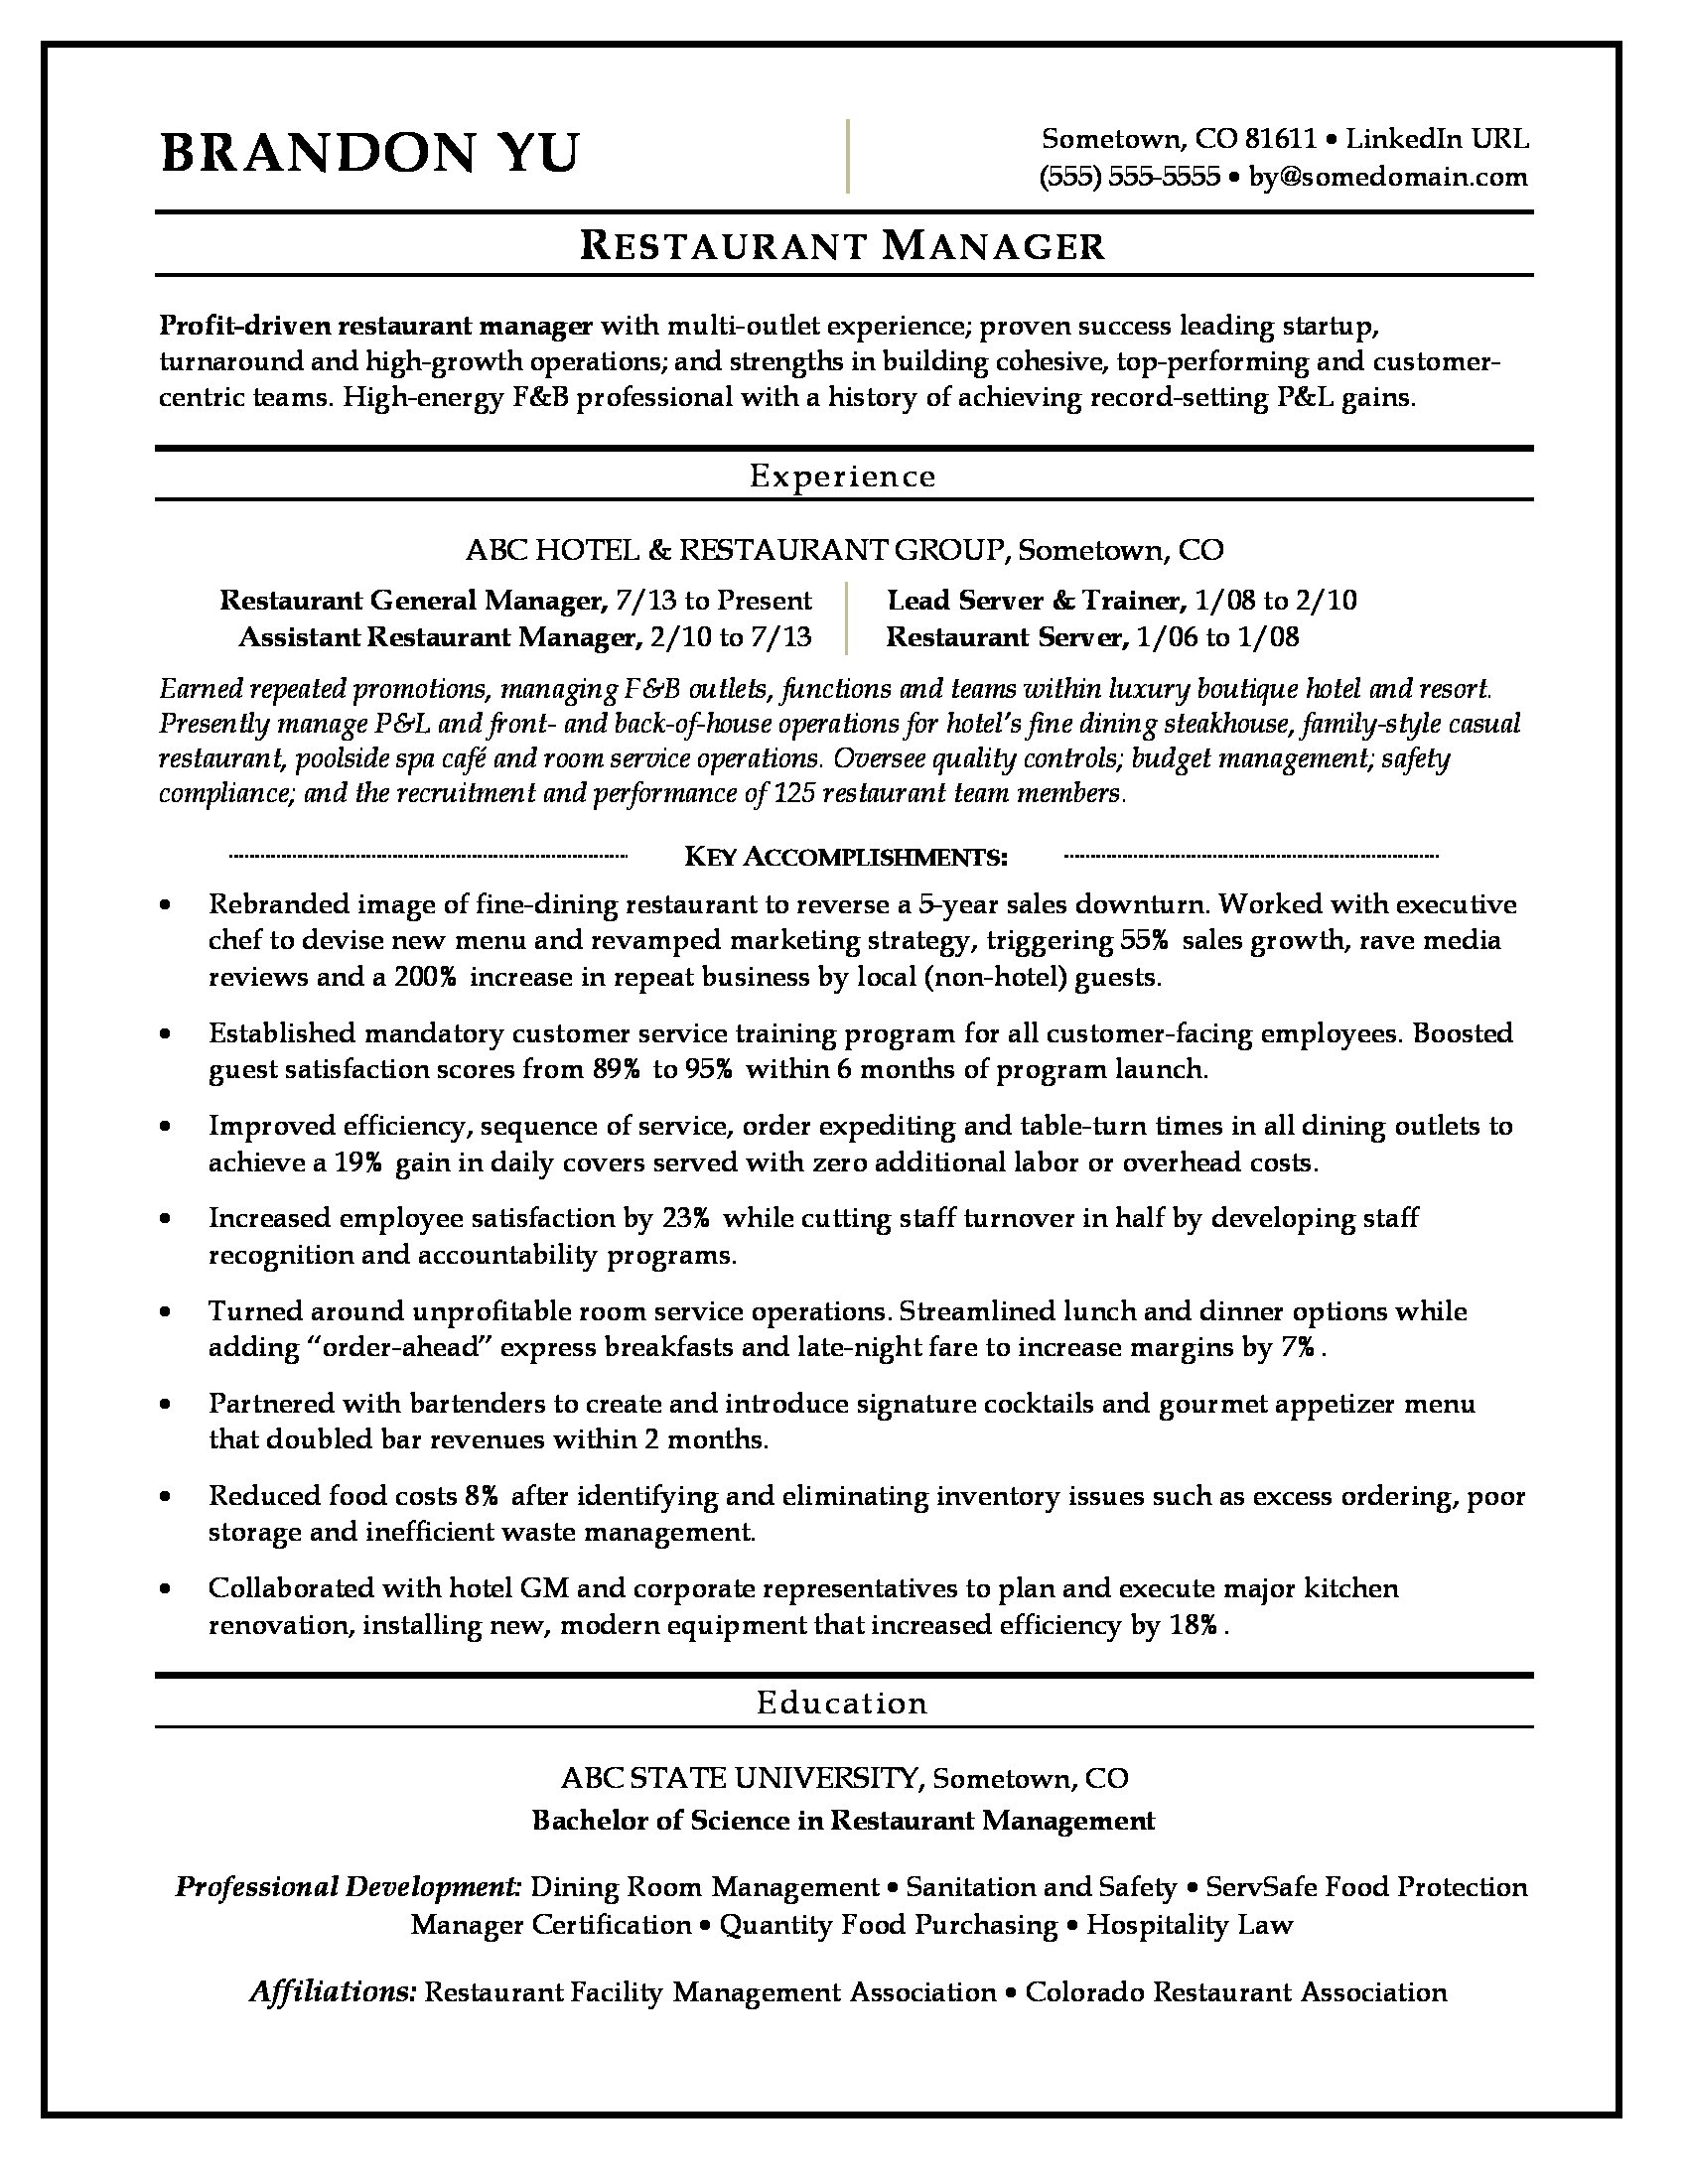 Restaurant manager resume sample monster sample resume for a restaurant manager xflitez Images